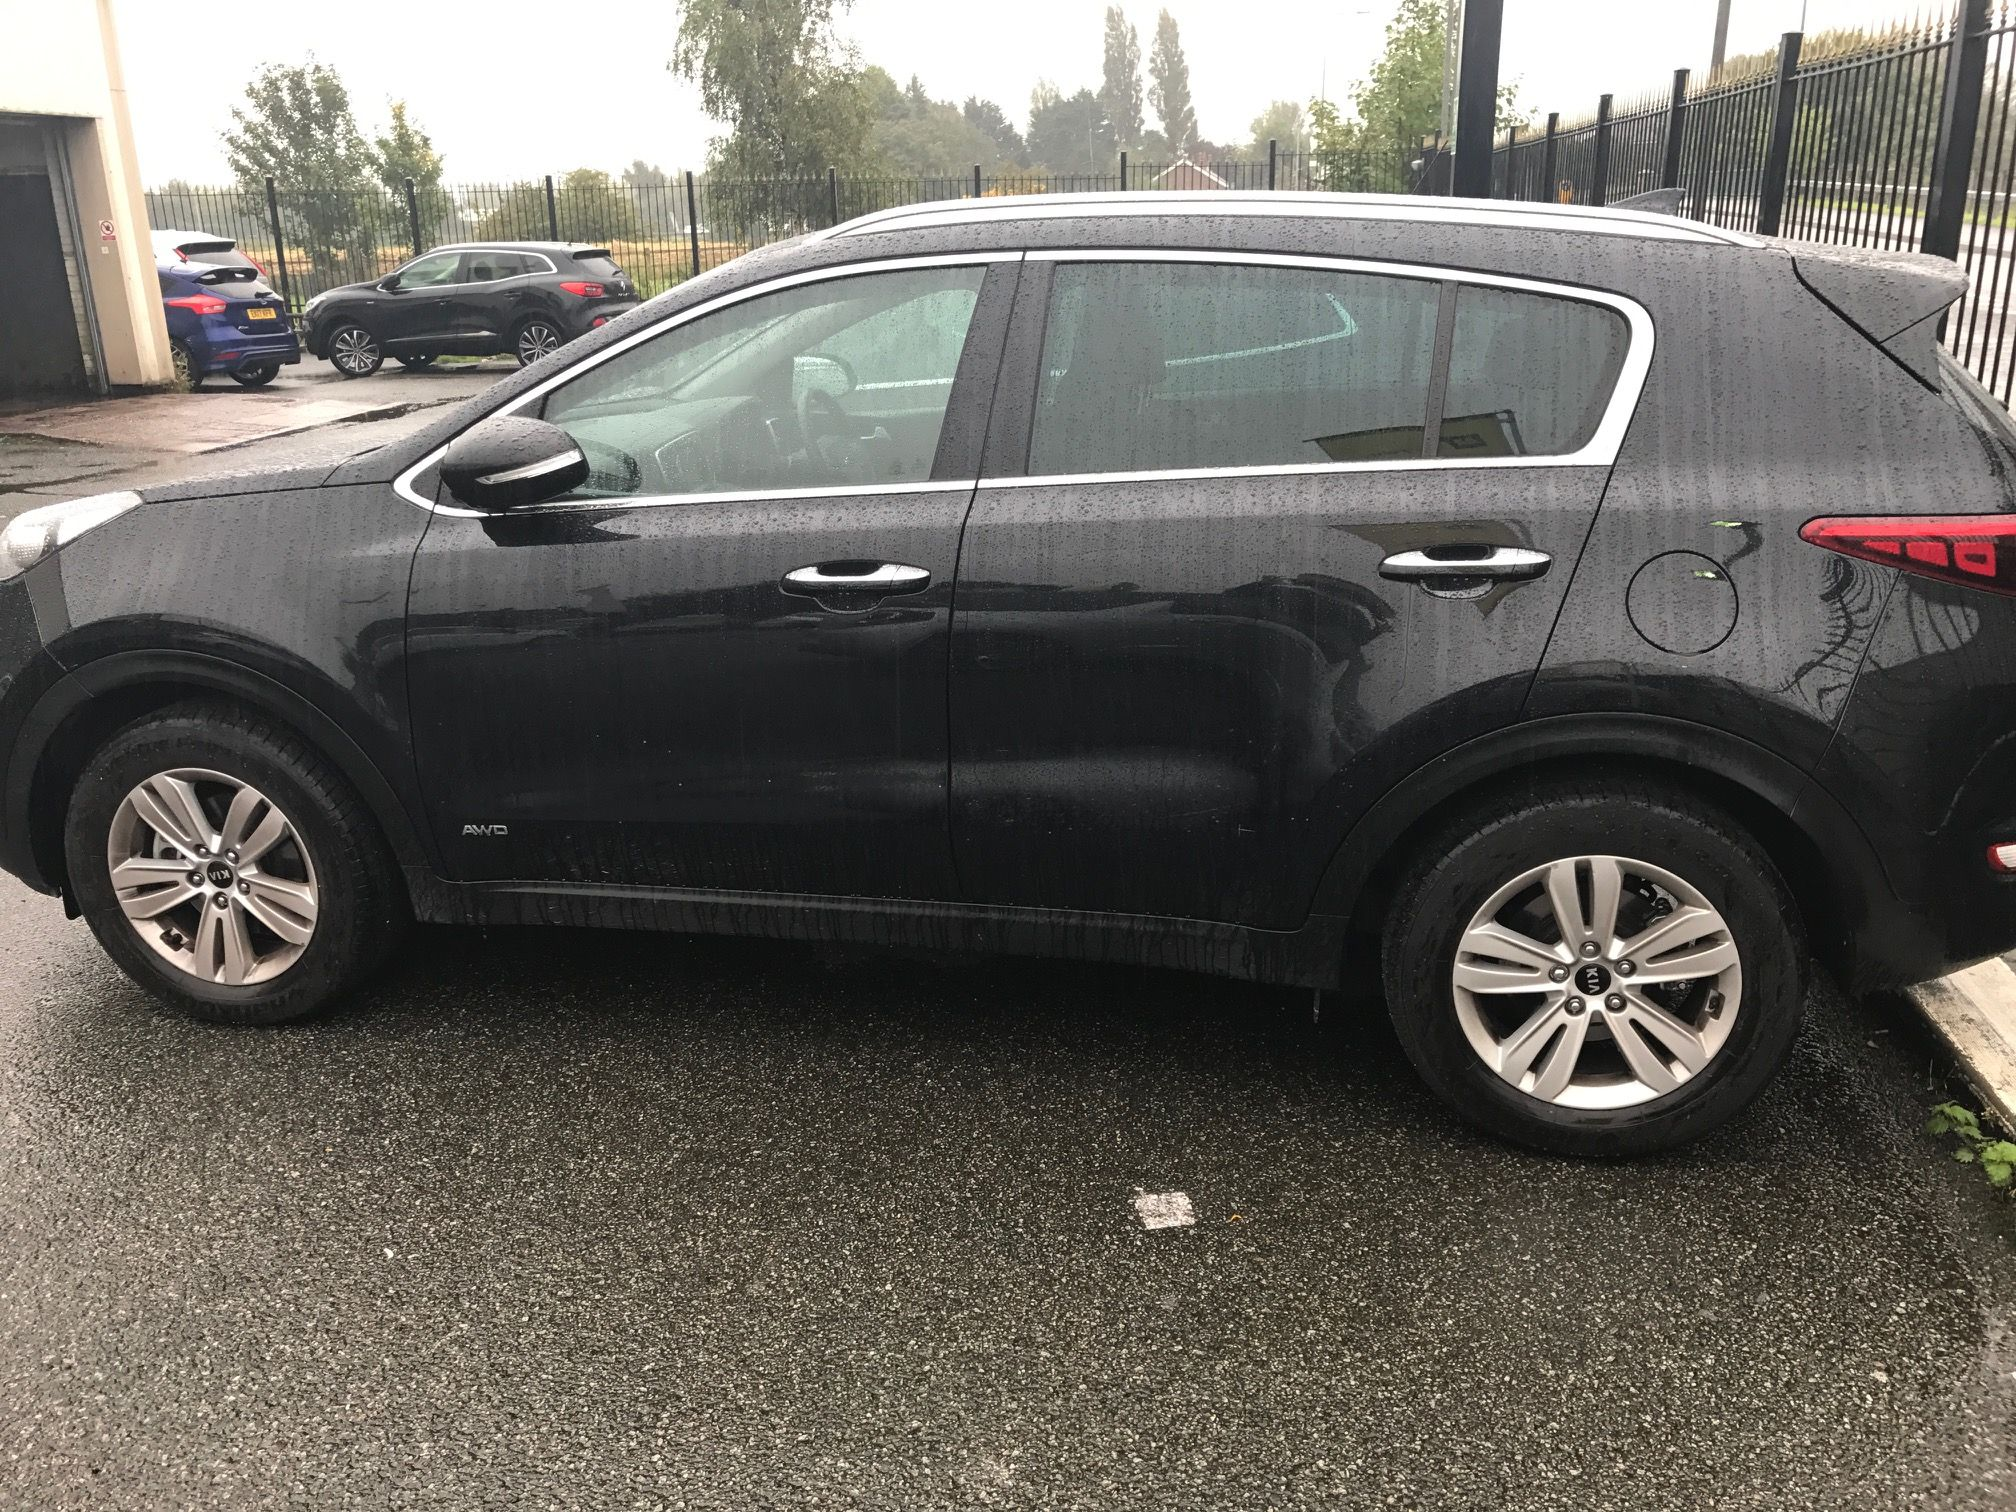 kia lease and leasing carlease carleasing personal best uk of use deals car pin the one many business vans for cars deal sportage